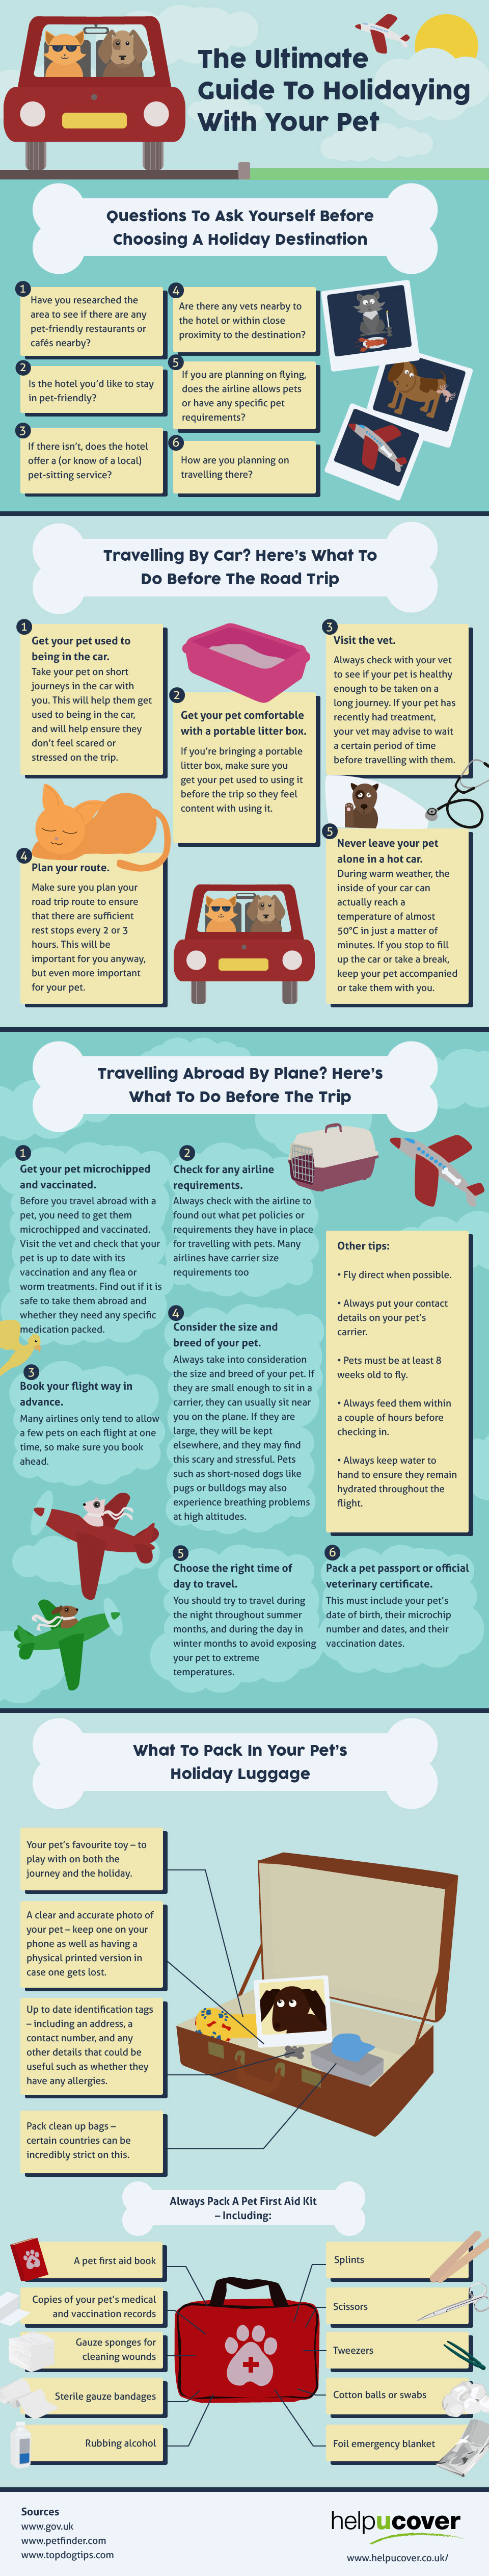 The Ultimate Guide To Holidaying With Your Pet